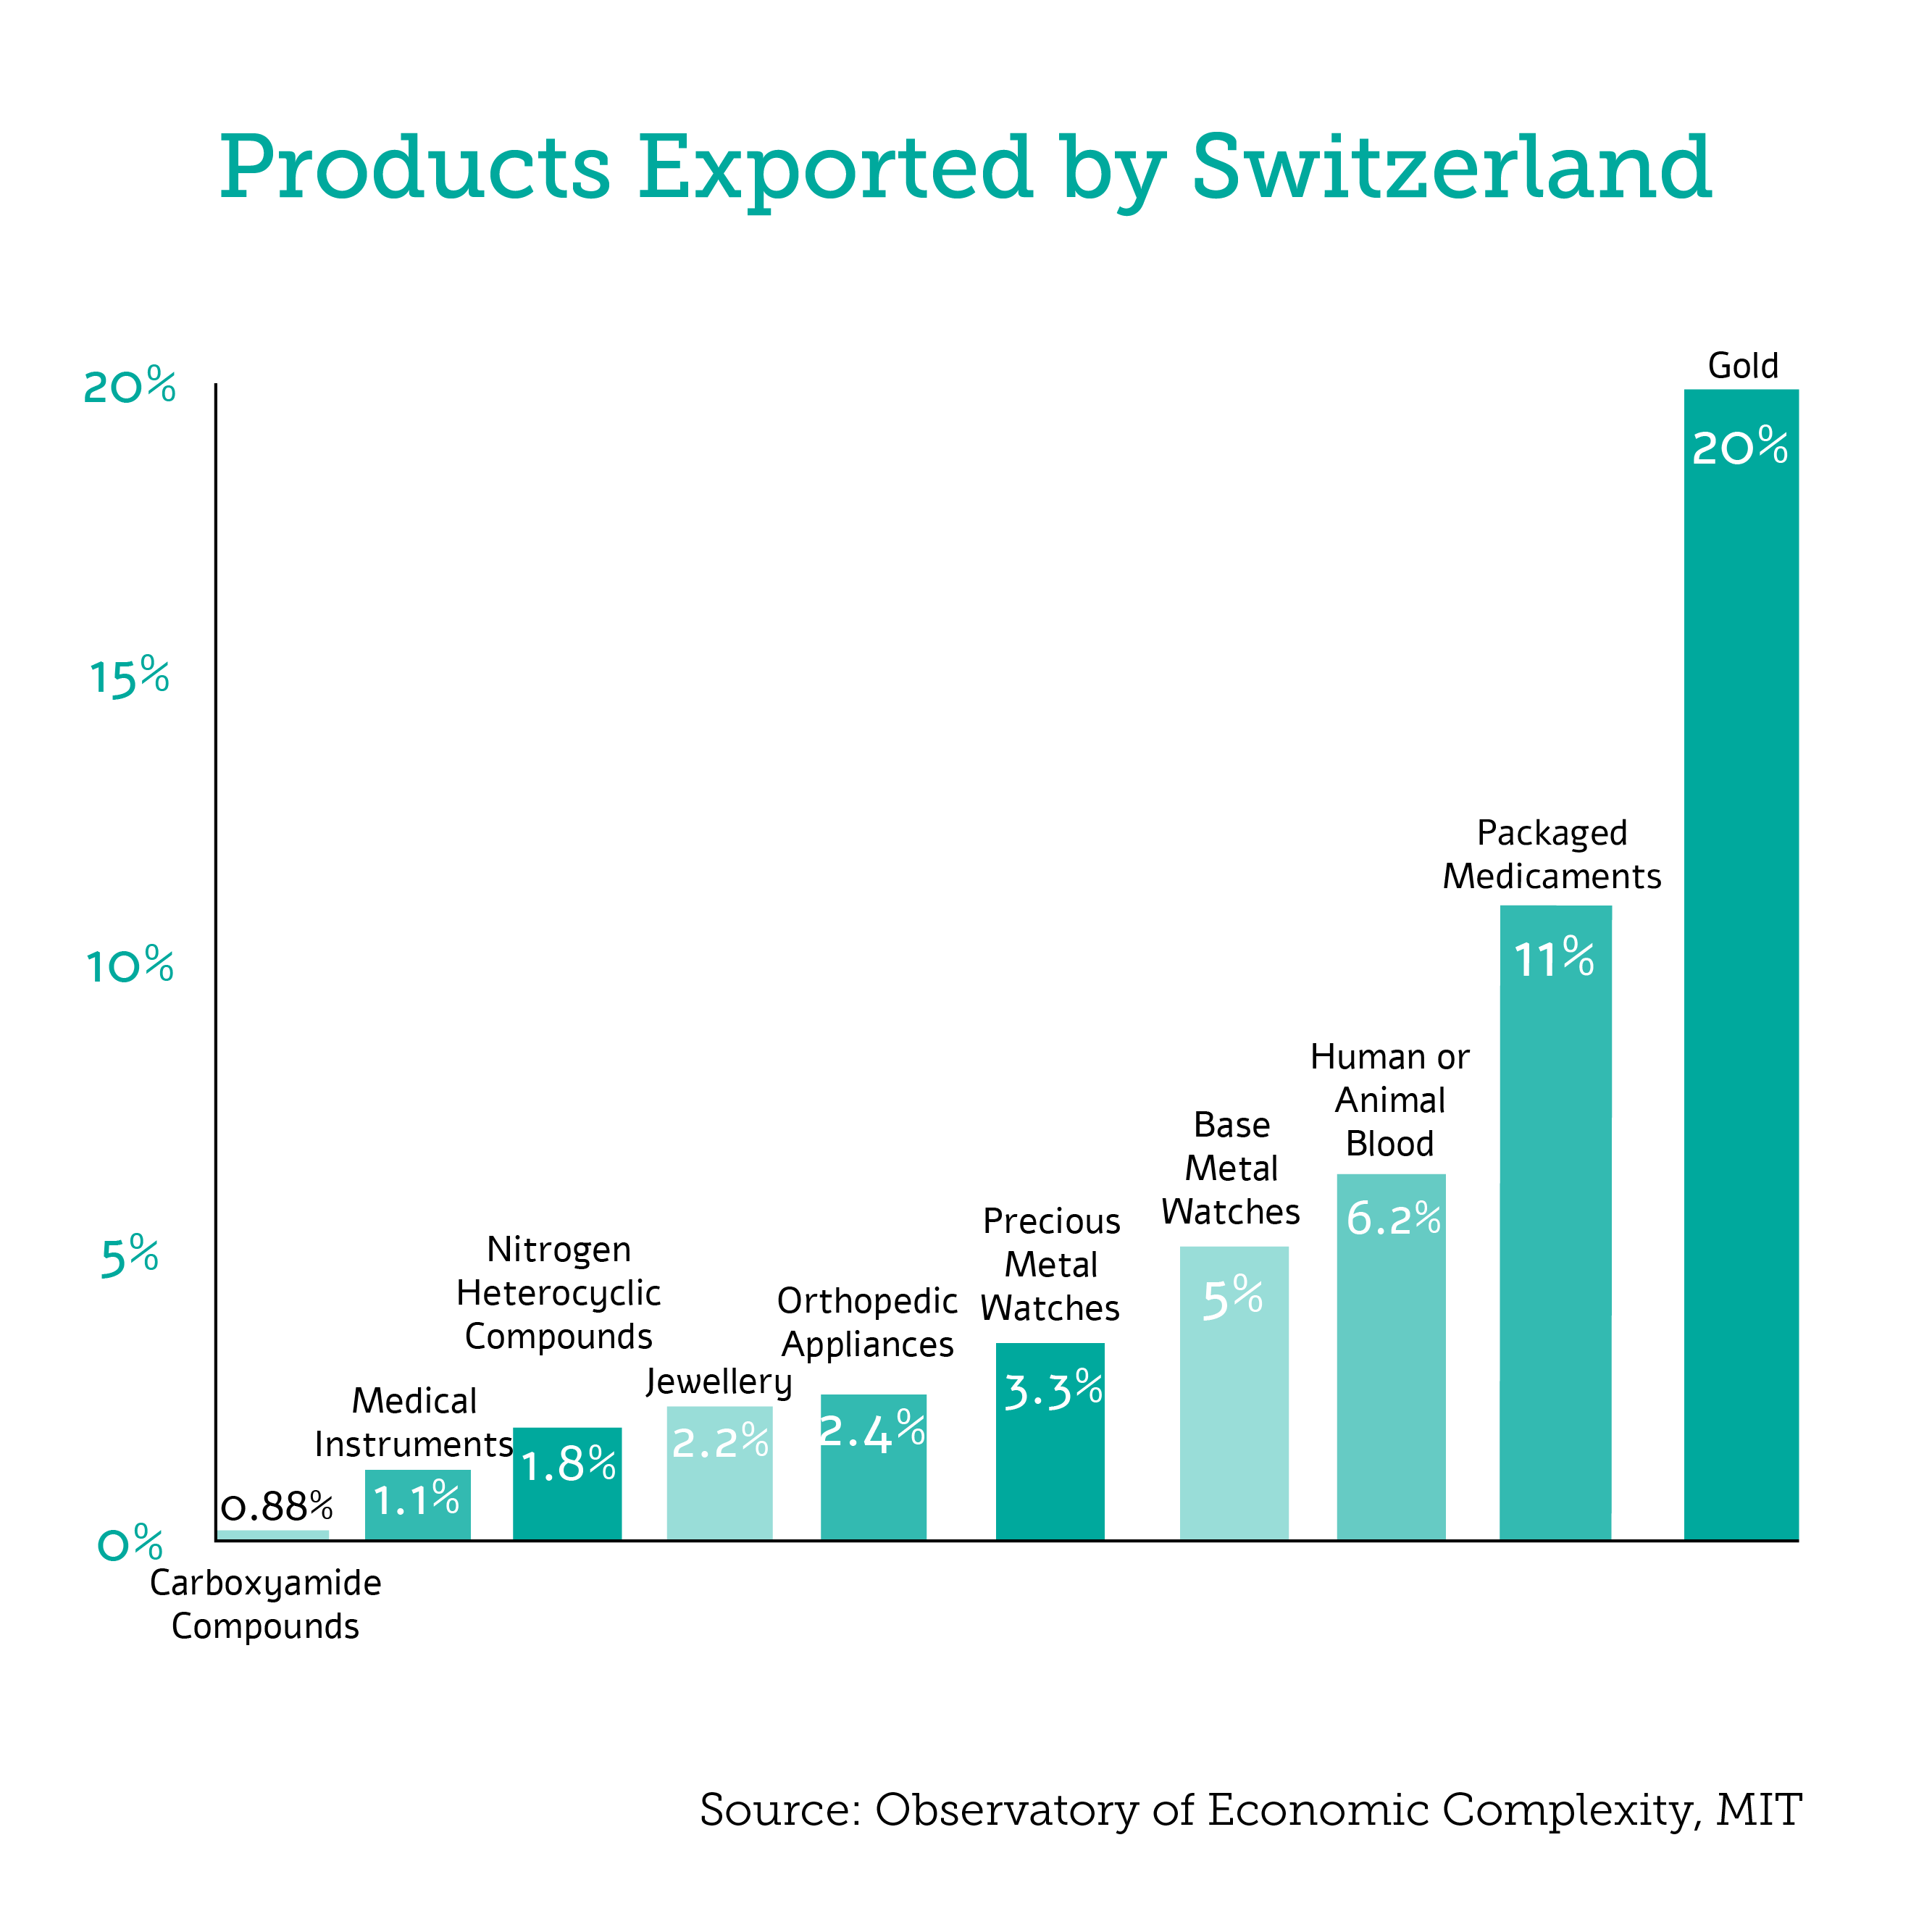 Products Exported by Switzerland